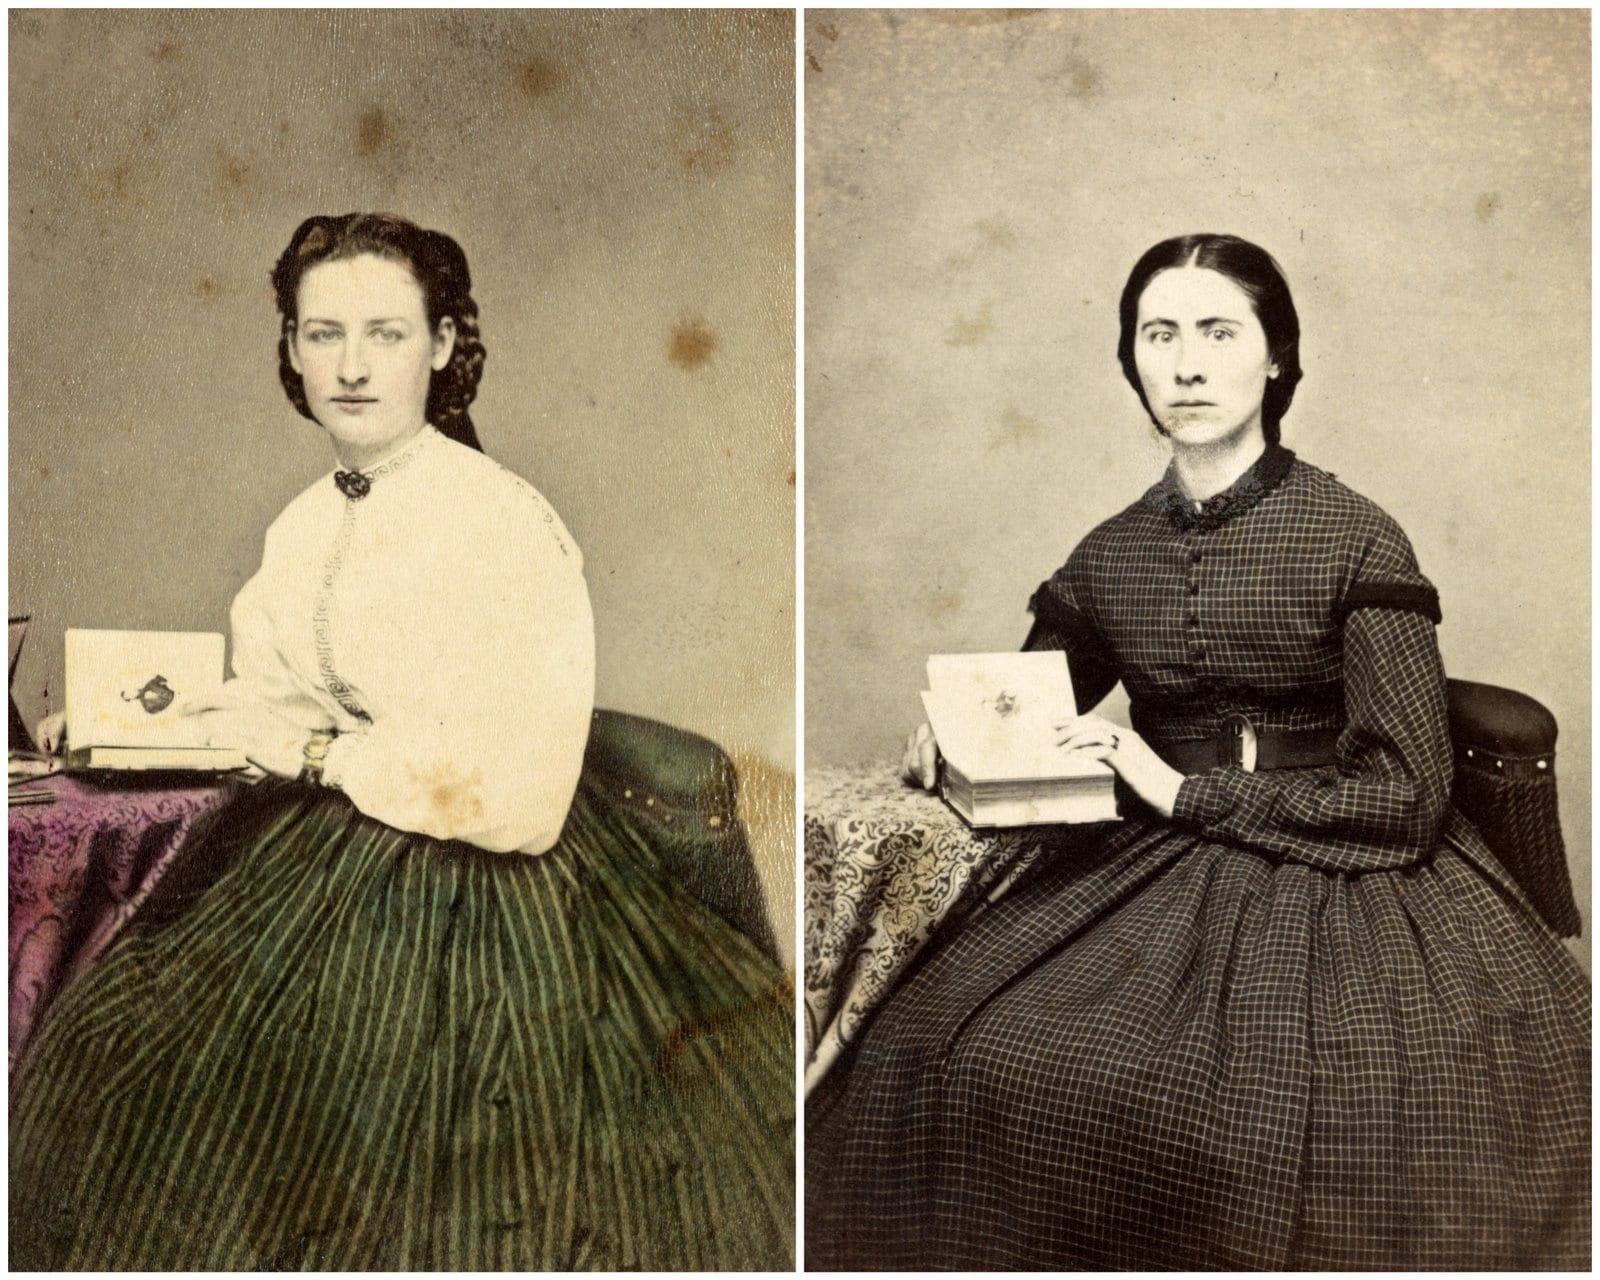 Portraits of two unidentified women during the Civil War in the same studio pose